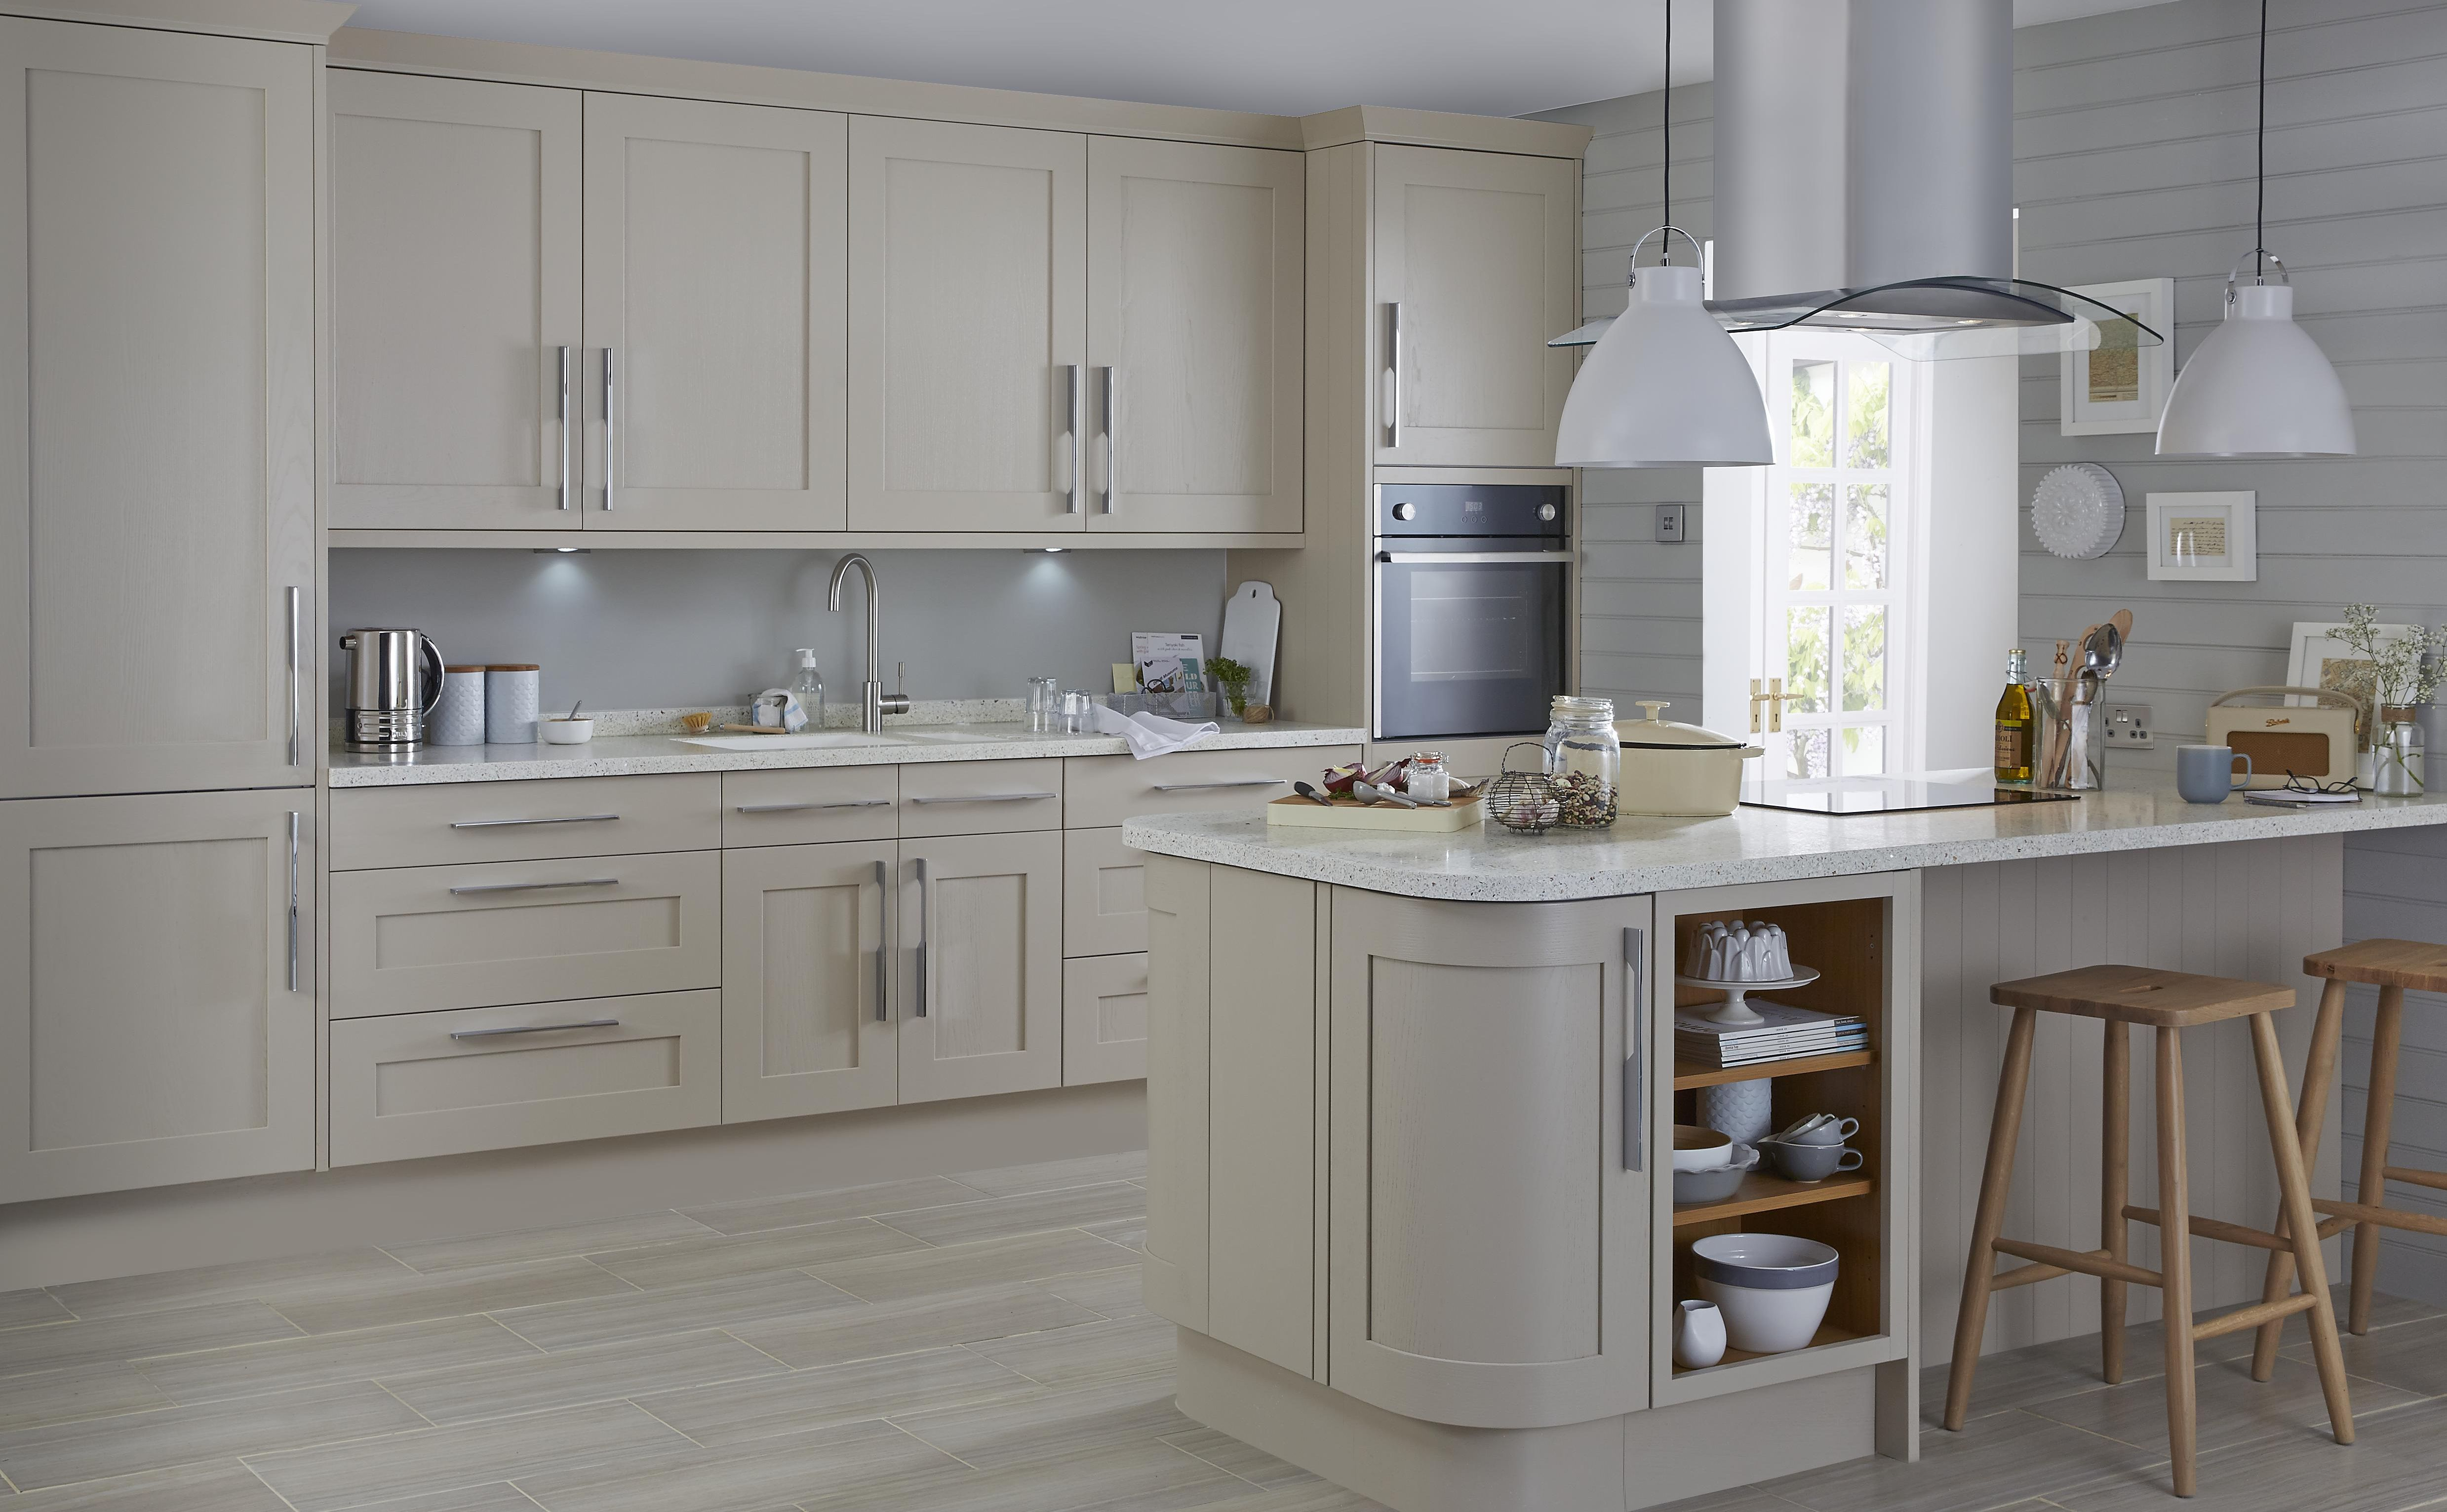 How to plan a new kitchen ideas advice diy at bq